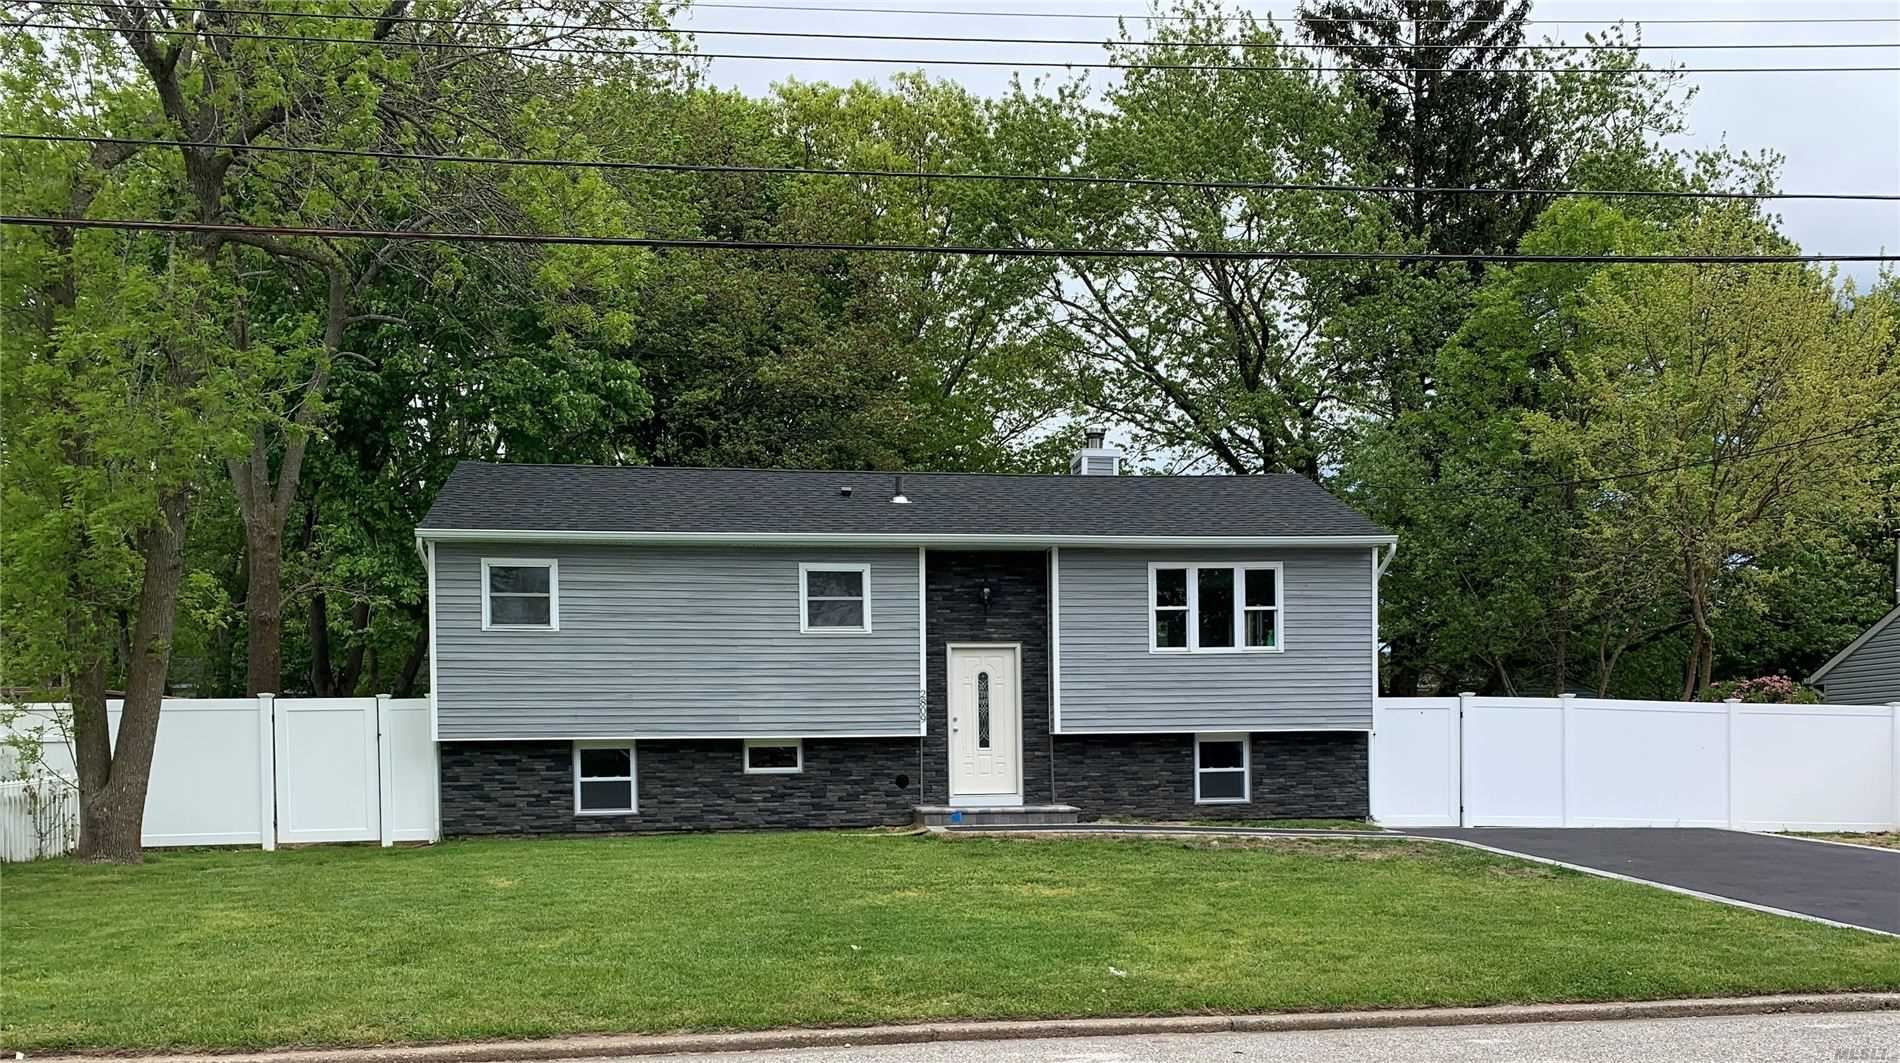 2809 Heather Ave, Medford, NY 11763 - MLS#: 3216972